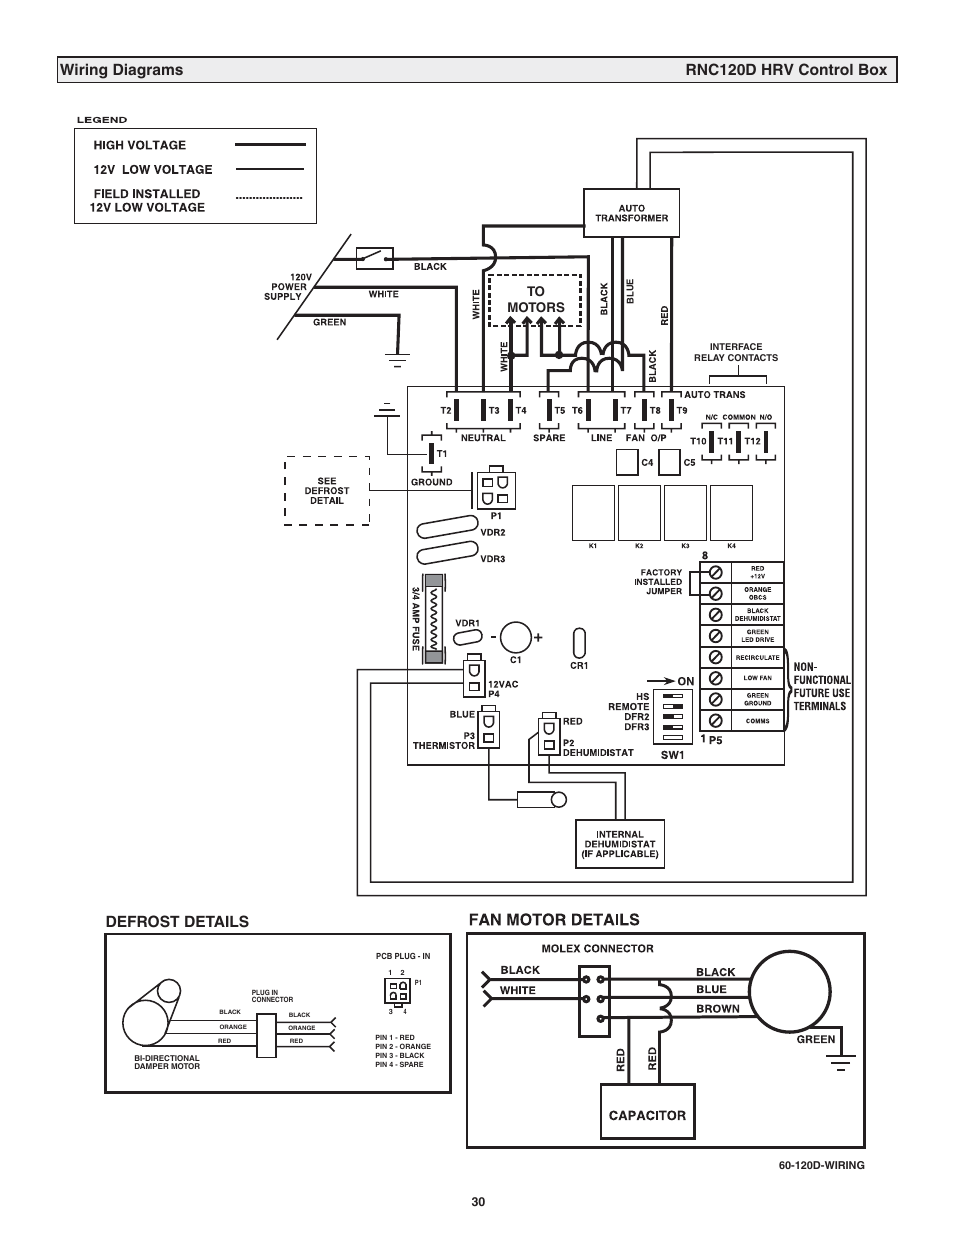 lifebreath rnc120d page30 lifebreath rnc120d user manual page 30 36 also for rnc200 lifebreath hrv wiring diagram at gsmportal.co